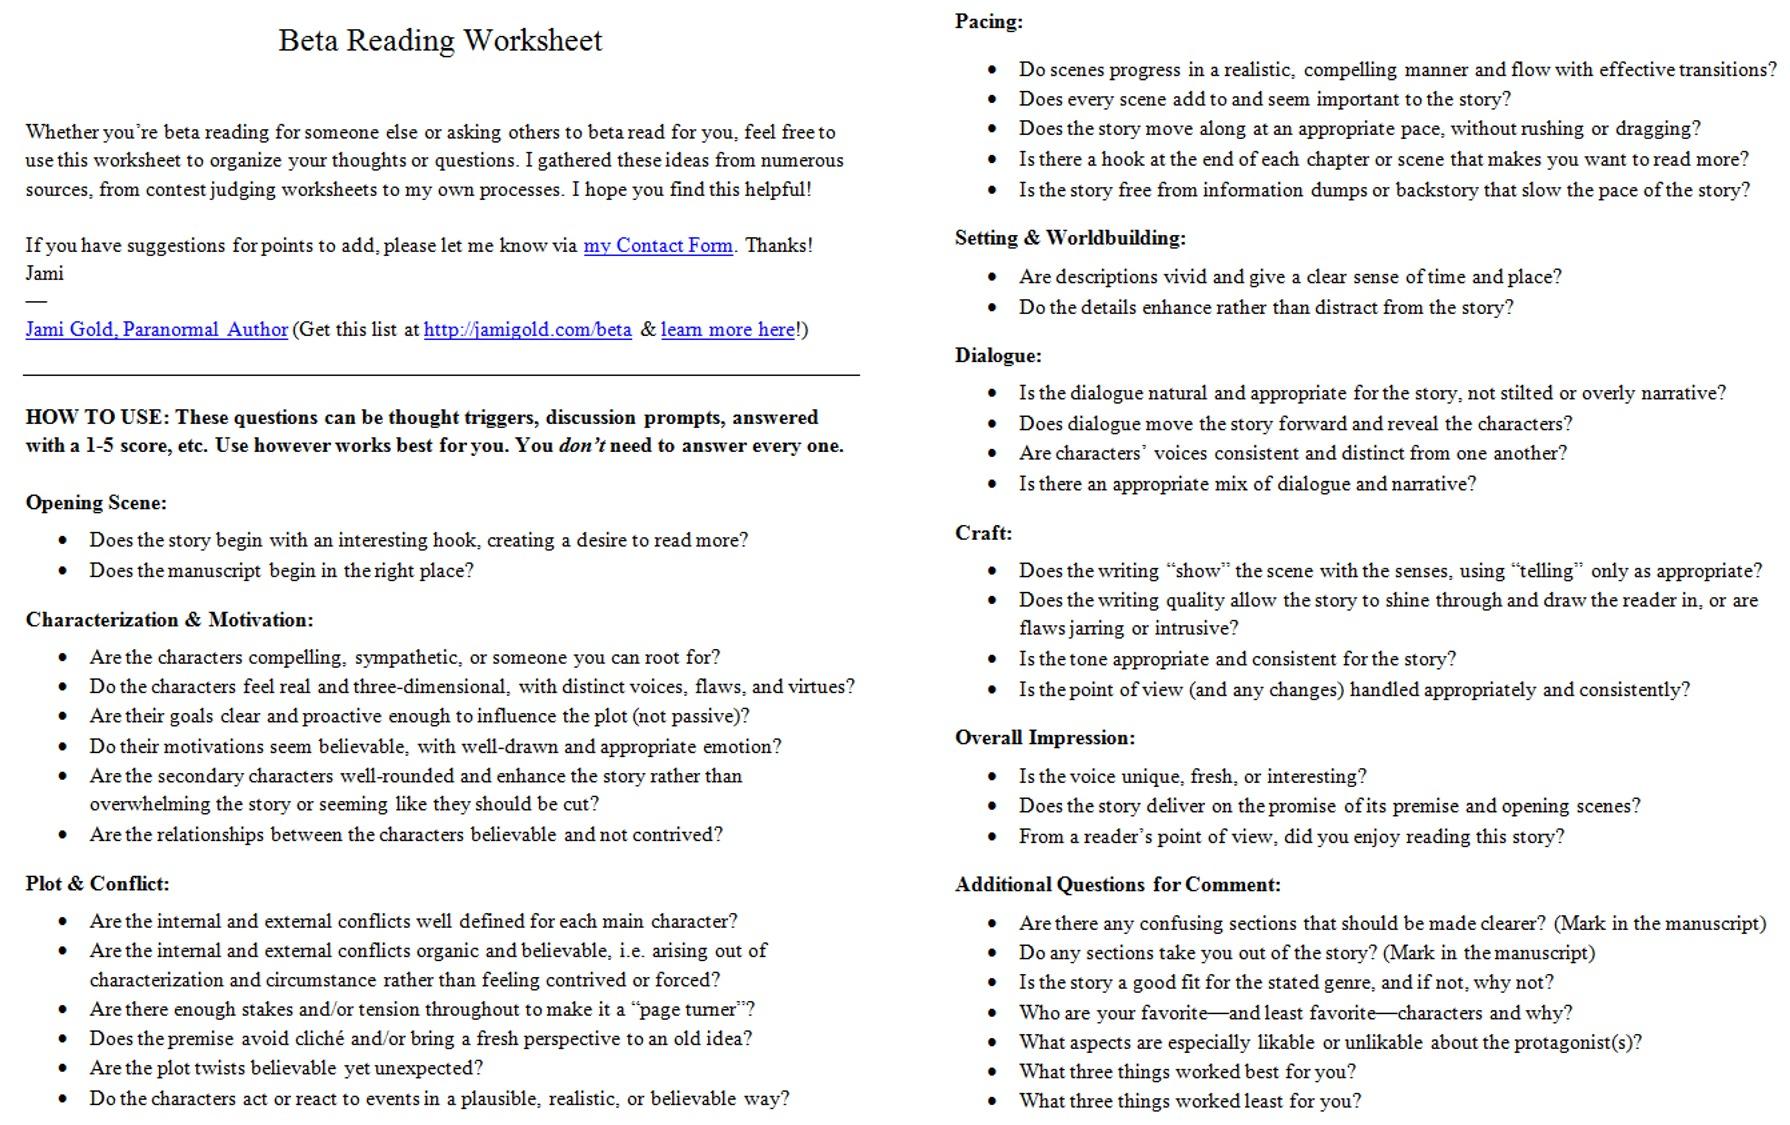 Proatmealus  Winsome Worksheets For Writers  Jami Gold Paranormal Author With Extraordinary Screen Shot Of The Twopage Beta Reading Worksheet With Beauteous Scientific Method For Kids Worksheet Also Inequalities Worksheet Algebra  In Addition Letter D Worksheets Preschool And Two Times Table Worksheet As Well As Vba For Each Worksheet In Workbook Additionally Easy Perimeter Worksheets From Jamigoldcom With Proatmealus  Extraordinary Worksheets For Writers  Jami Gold Paranormal Author With Beauteous Screen Shot Of The Twopage Beta Reading Worksheet And Winsome Scientific Method For Kids Worksheet Also Inequalities Worksheet Algebra  In Addition Letter D Worksheets Preschool From Jamigoldcom